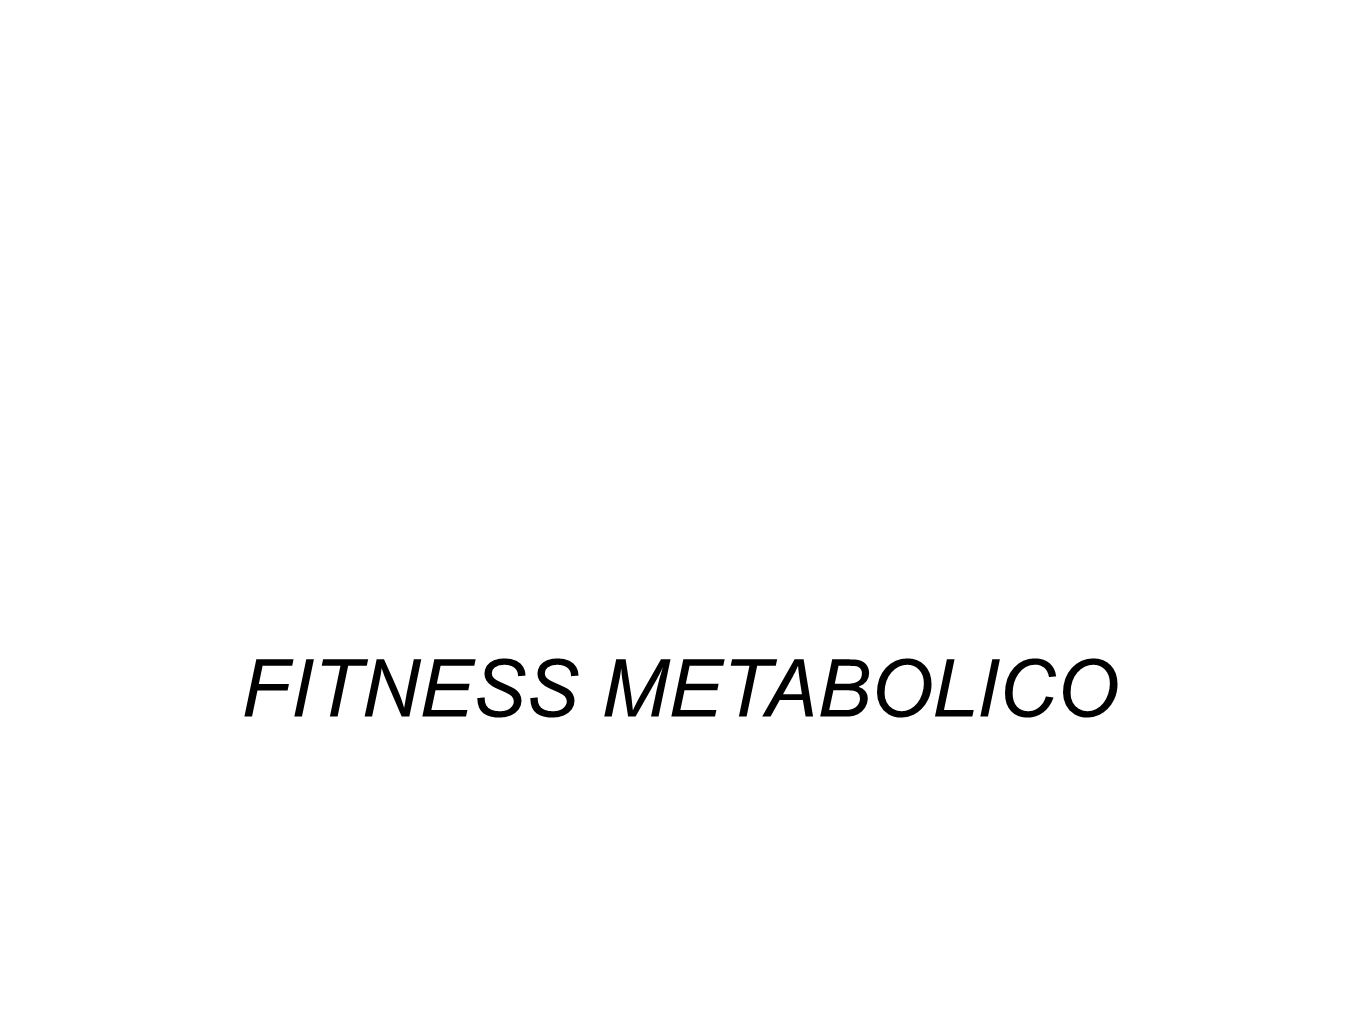 FITNESS METABOLICO